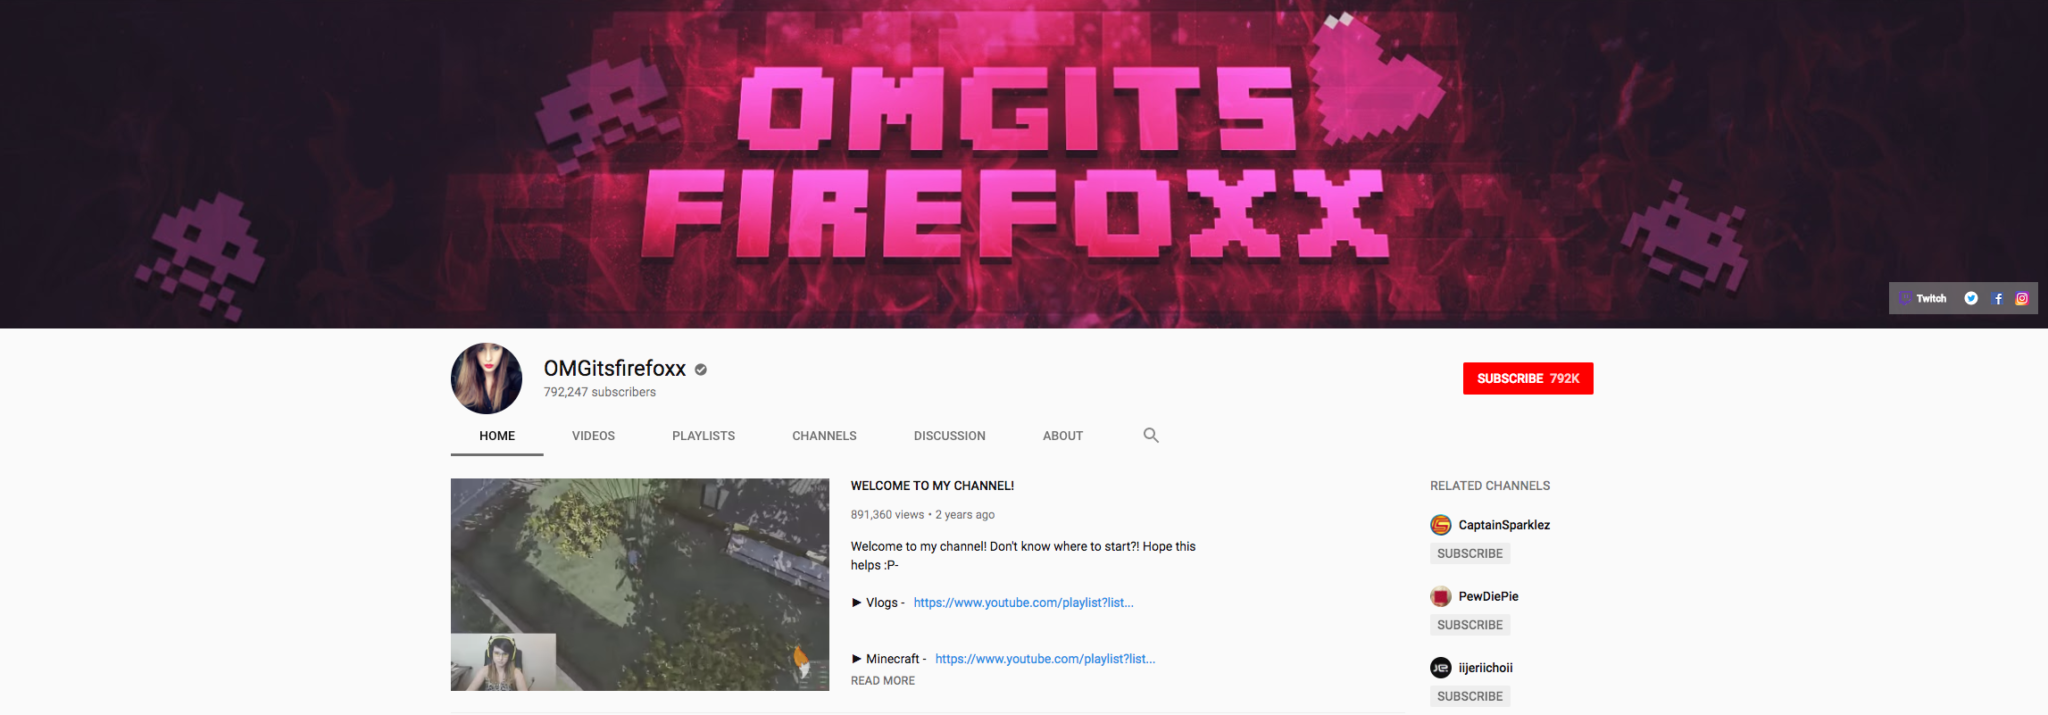 OMGitsfirefoxx Top Gaming Influencers